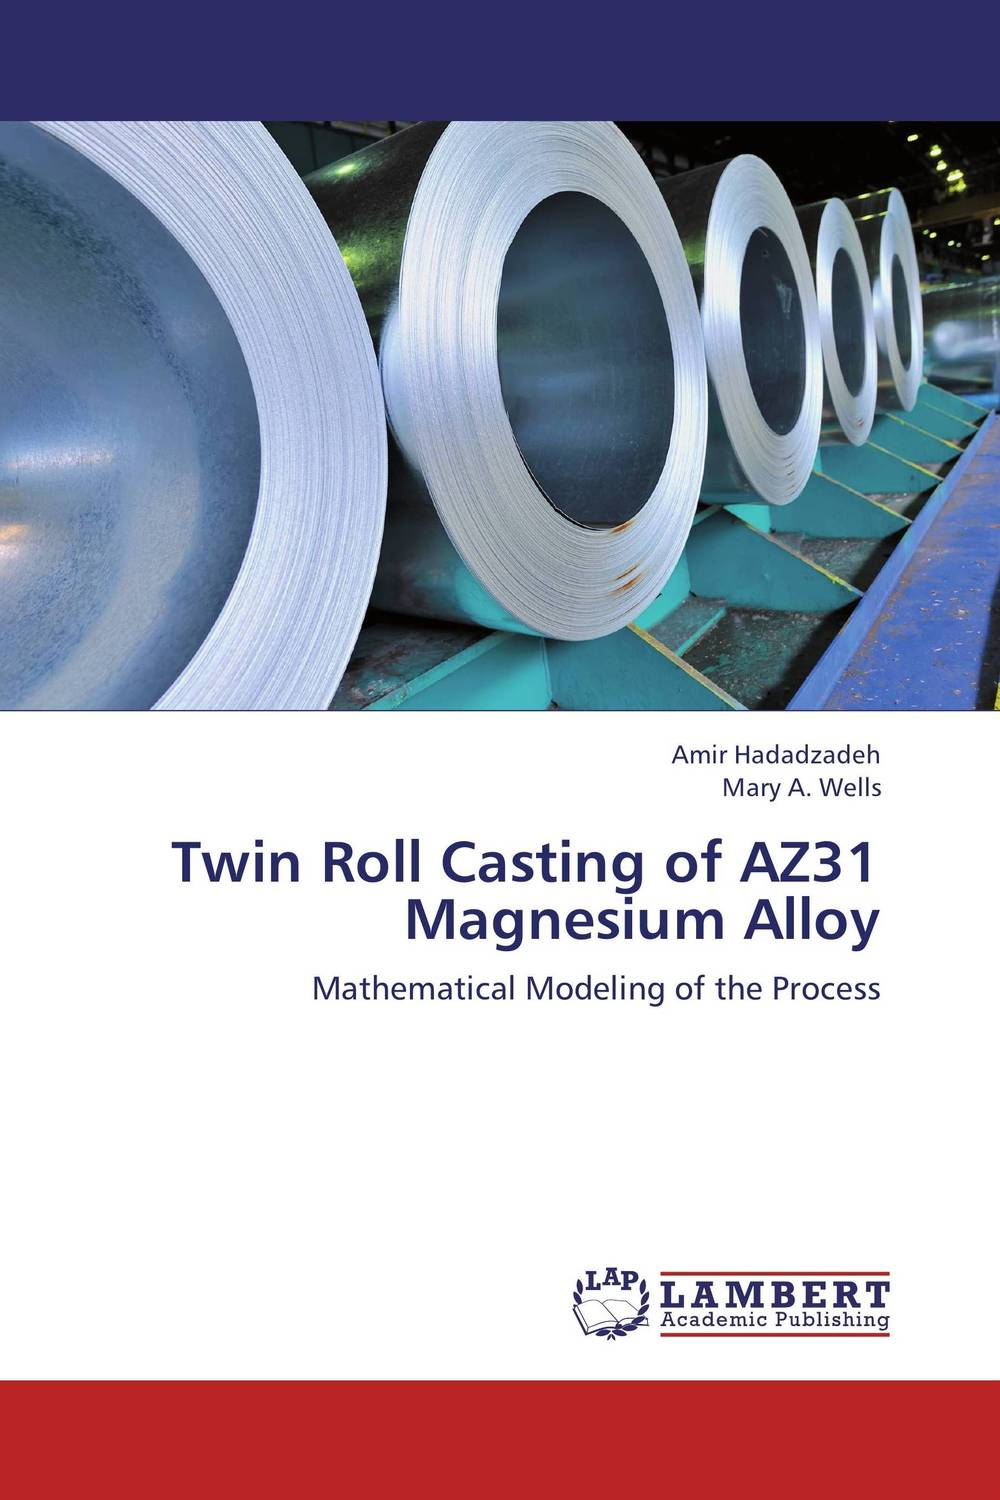 Twin Roll Casting of AZ31 Magnesium Alloy